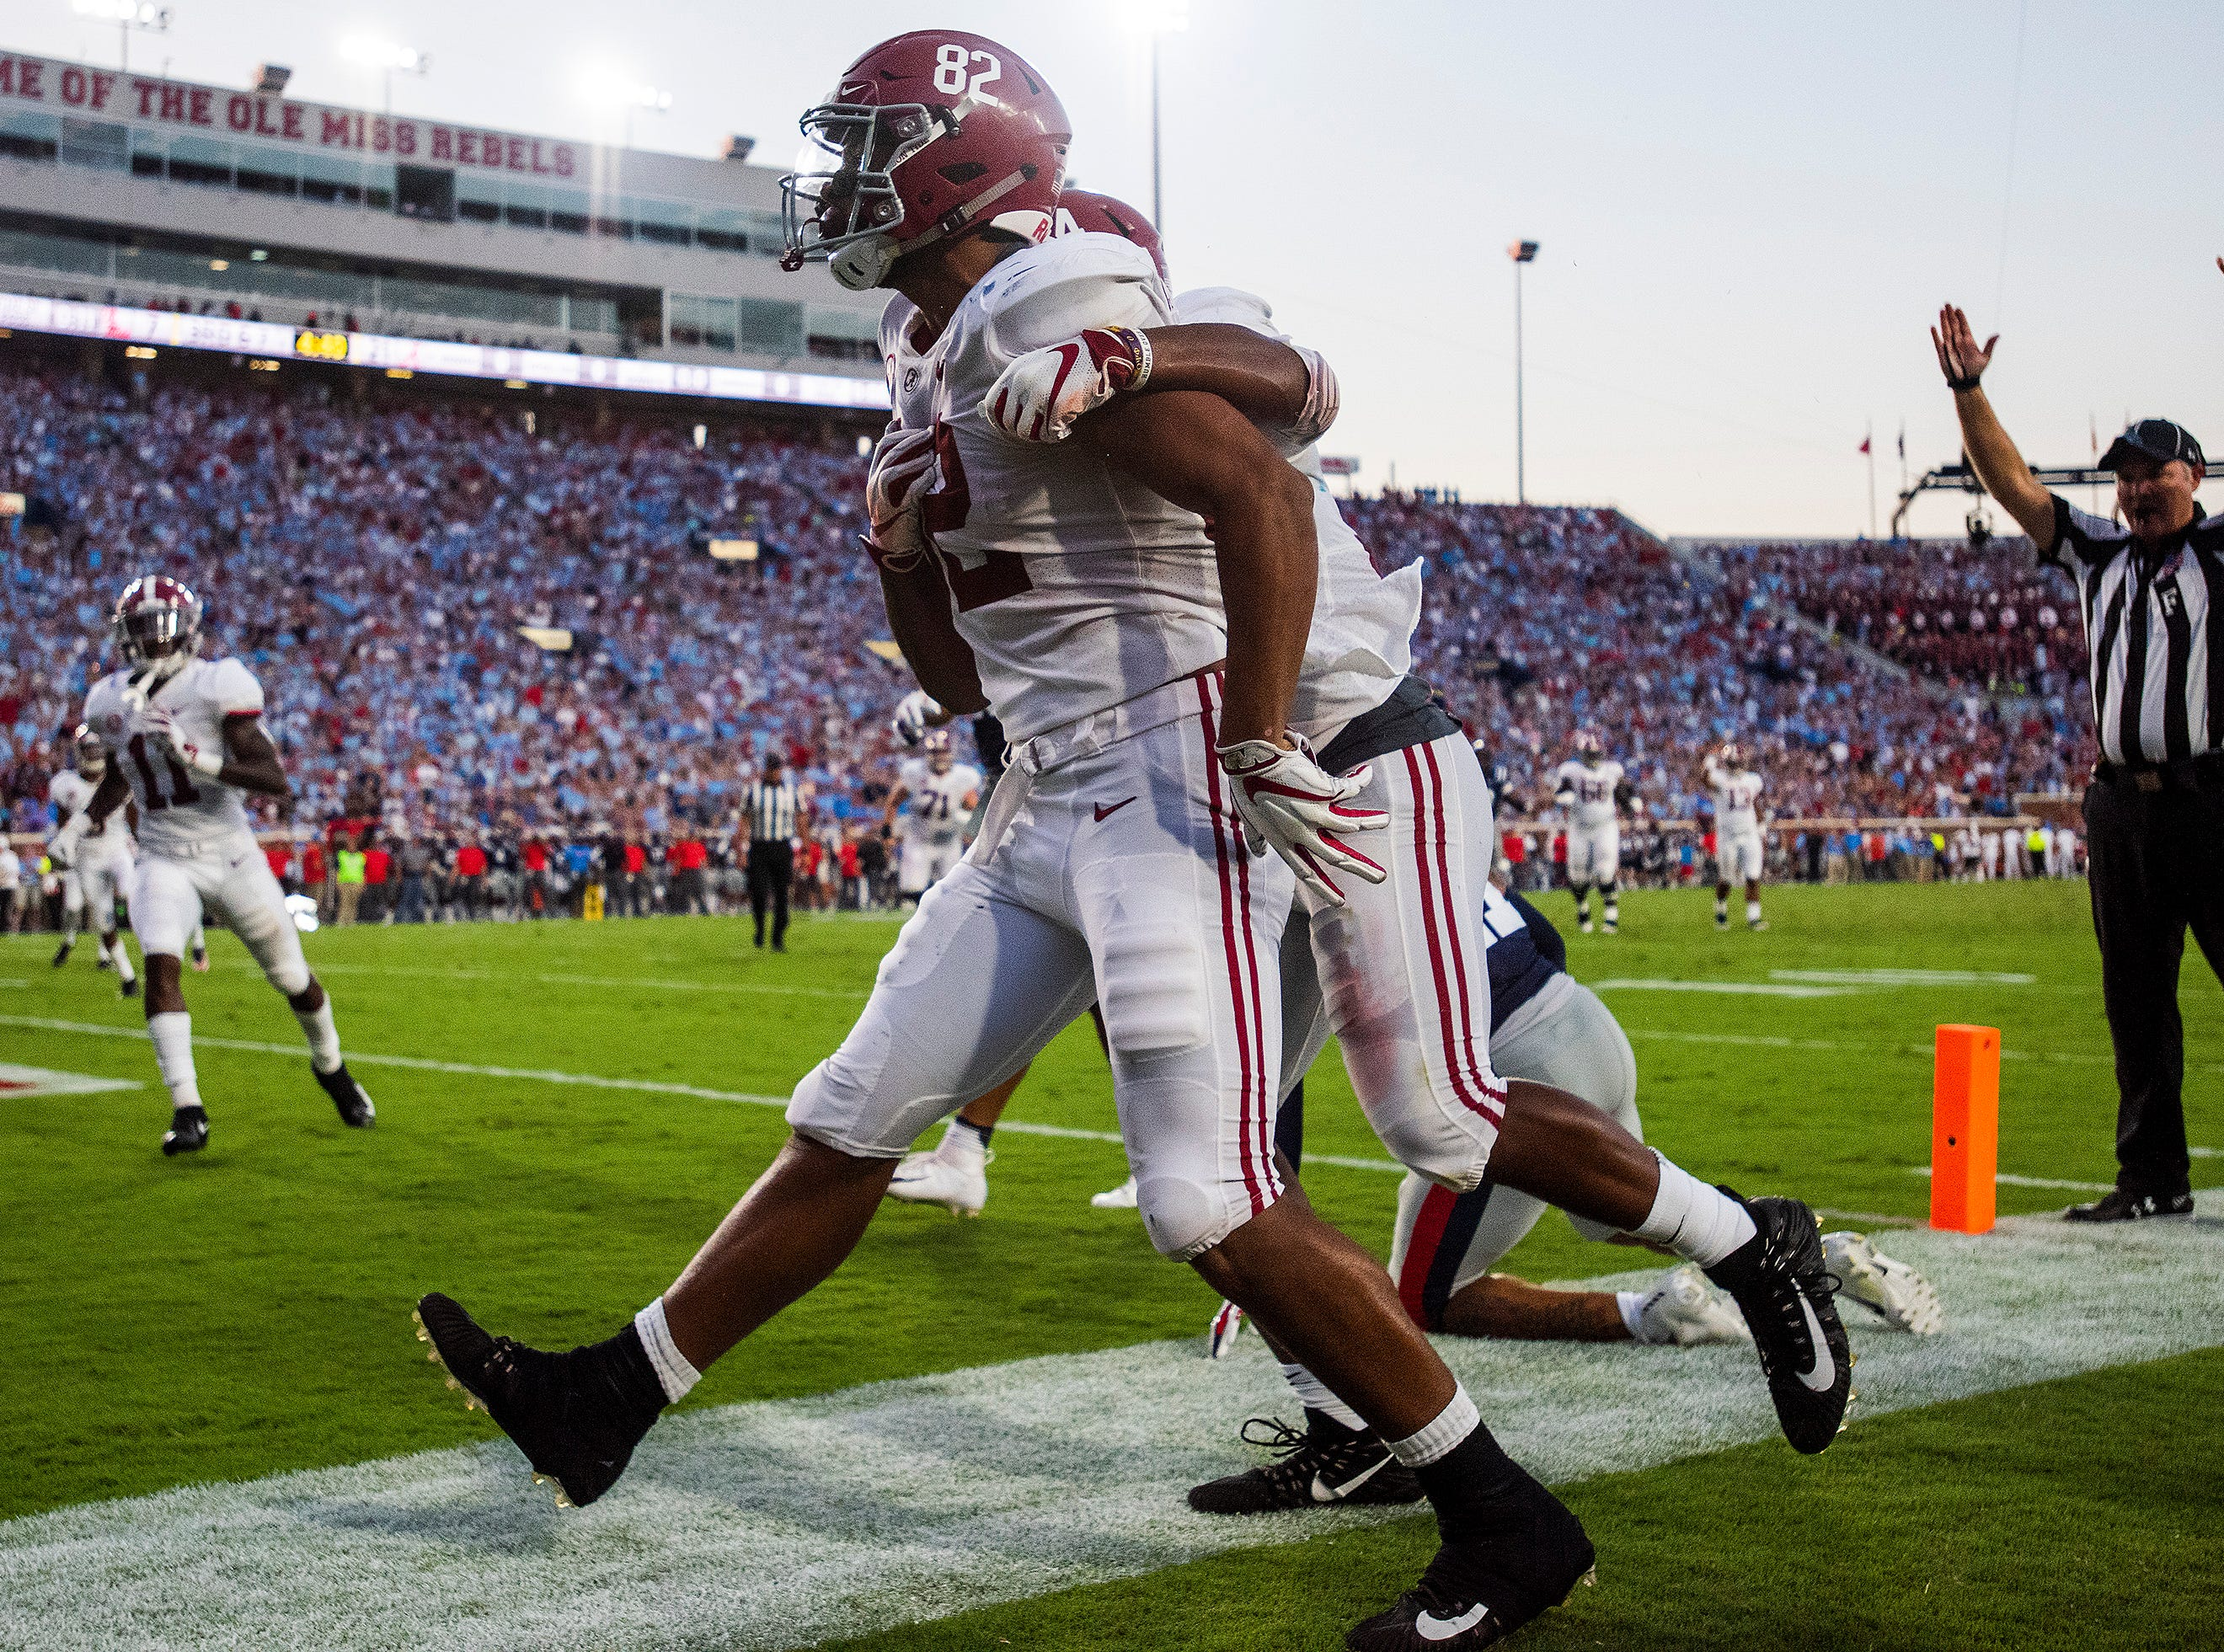 Alabama tight end Irv Smith Jr. (82) celebrates a touchdown reception against Ole Miss In first half action in Oxford, Ms., on Saturday September 15, 2018.